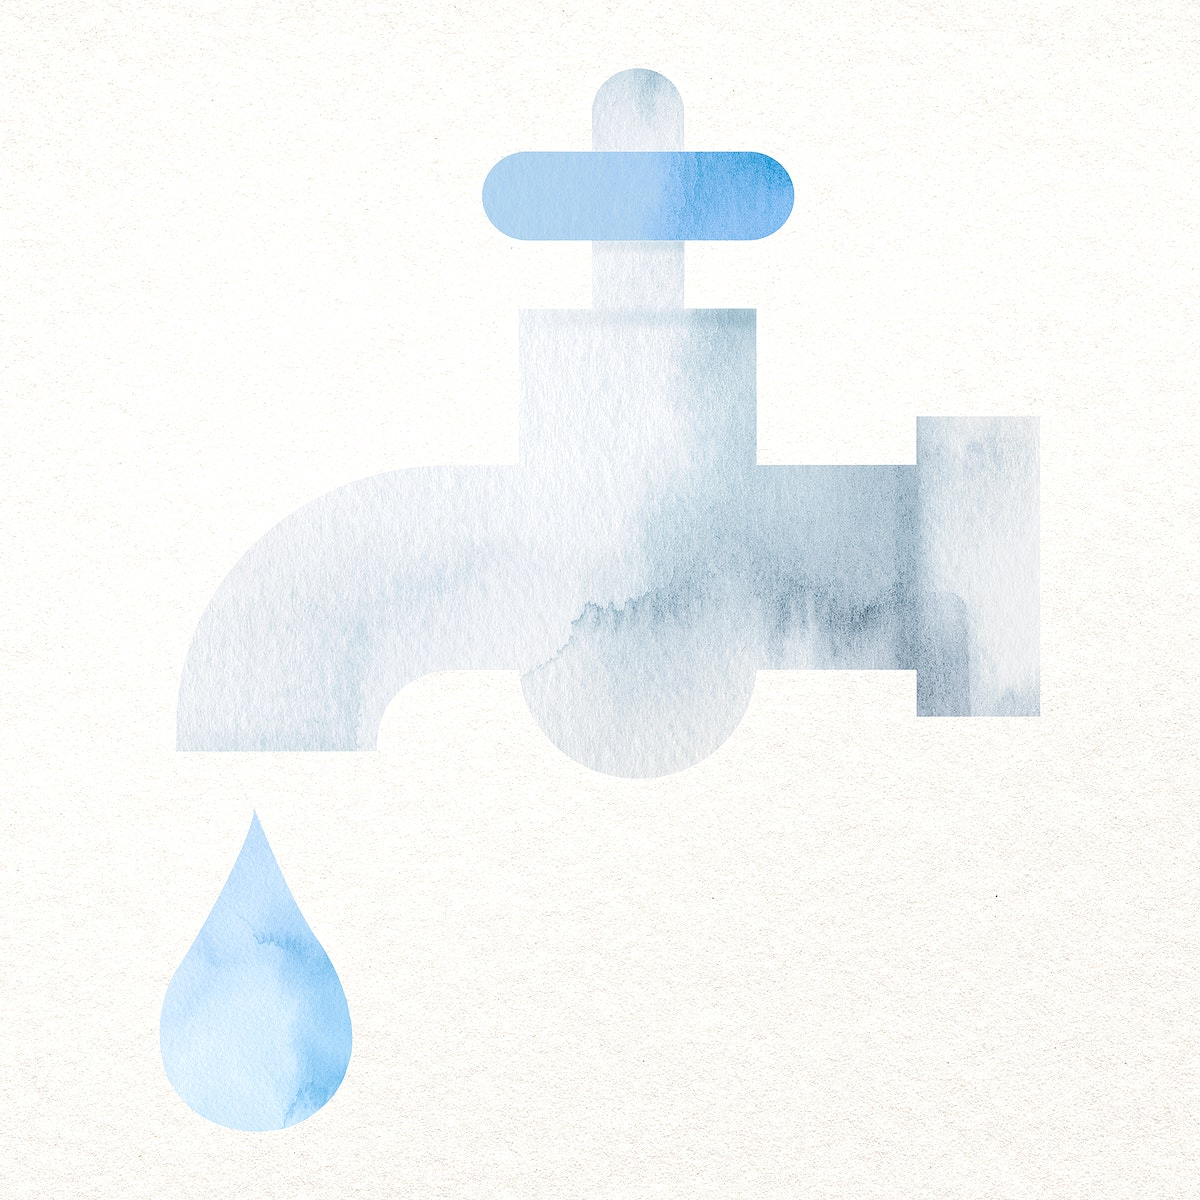 Tap water design element psd in watercolor illustration